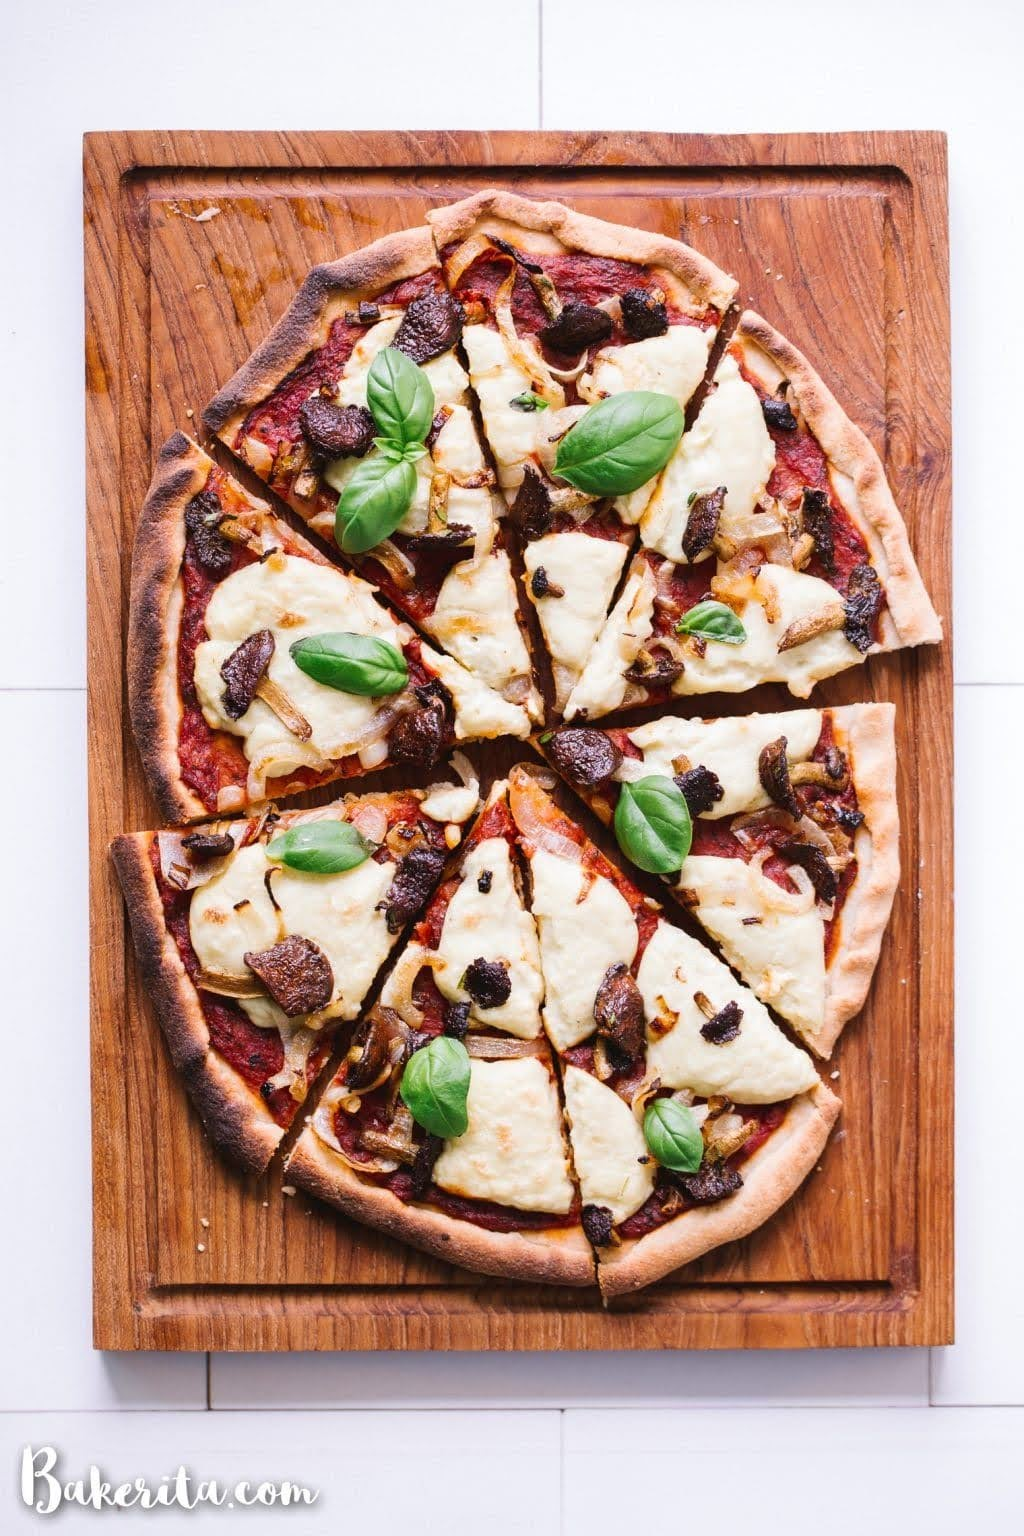 Gluten-Free Vegan Pizza with Mushrooms and Onions | Photo Courtesy of Bakerita